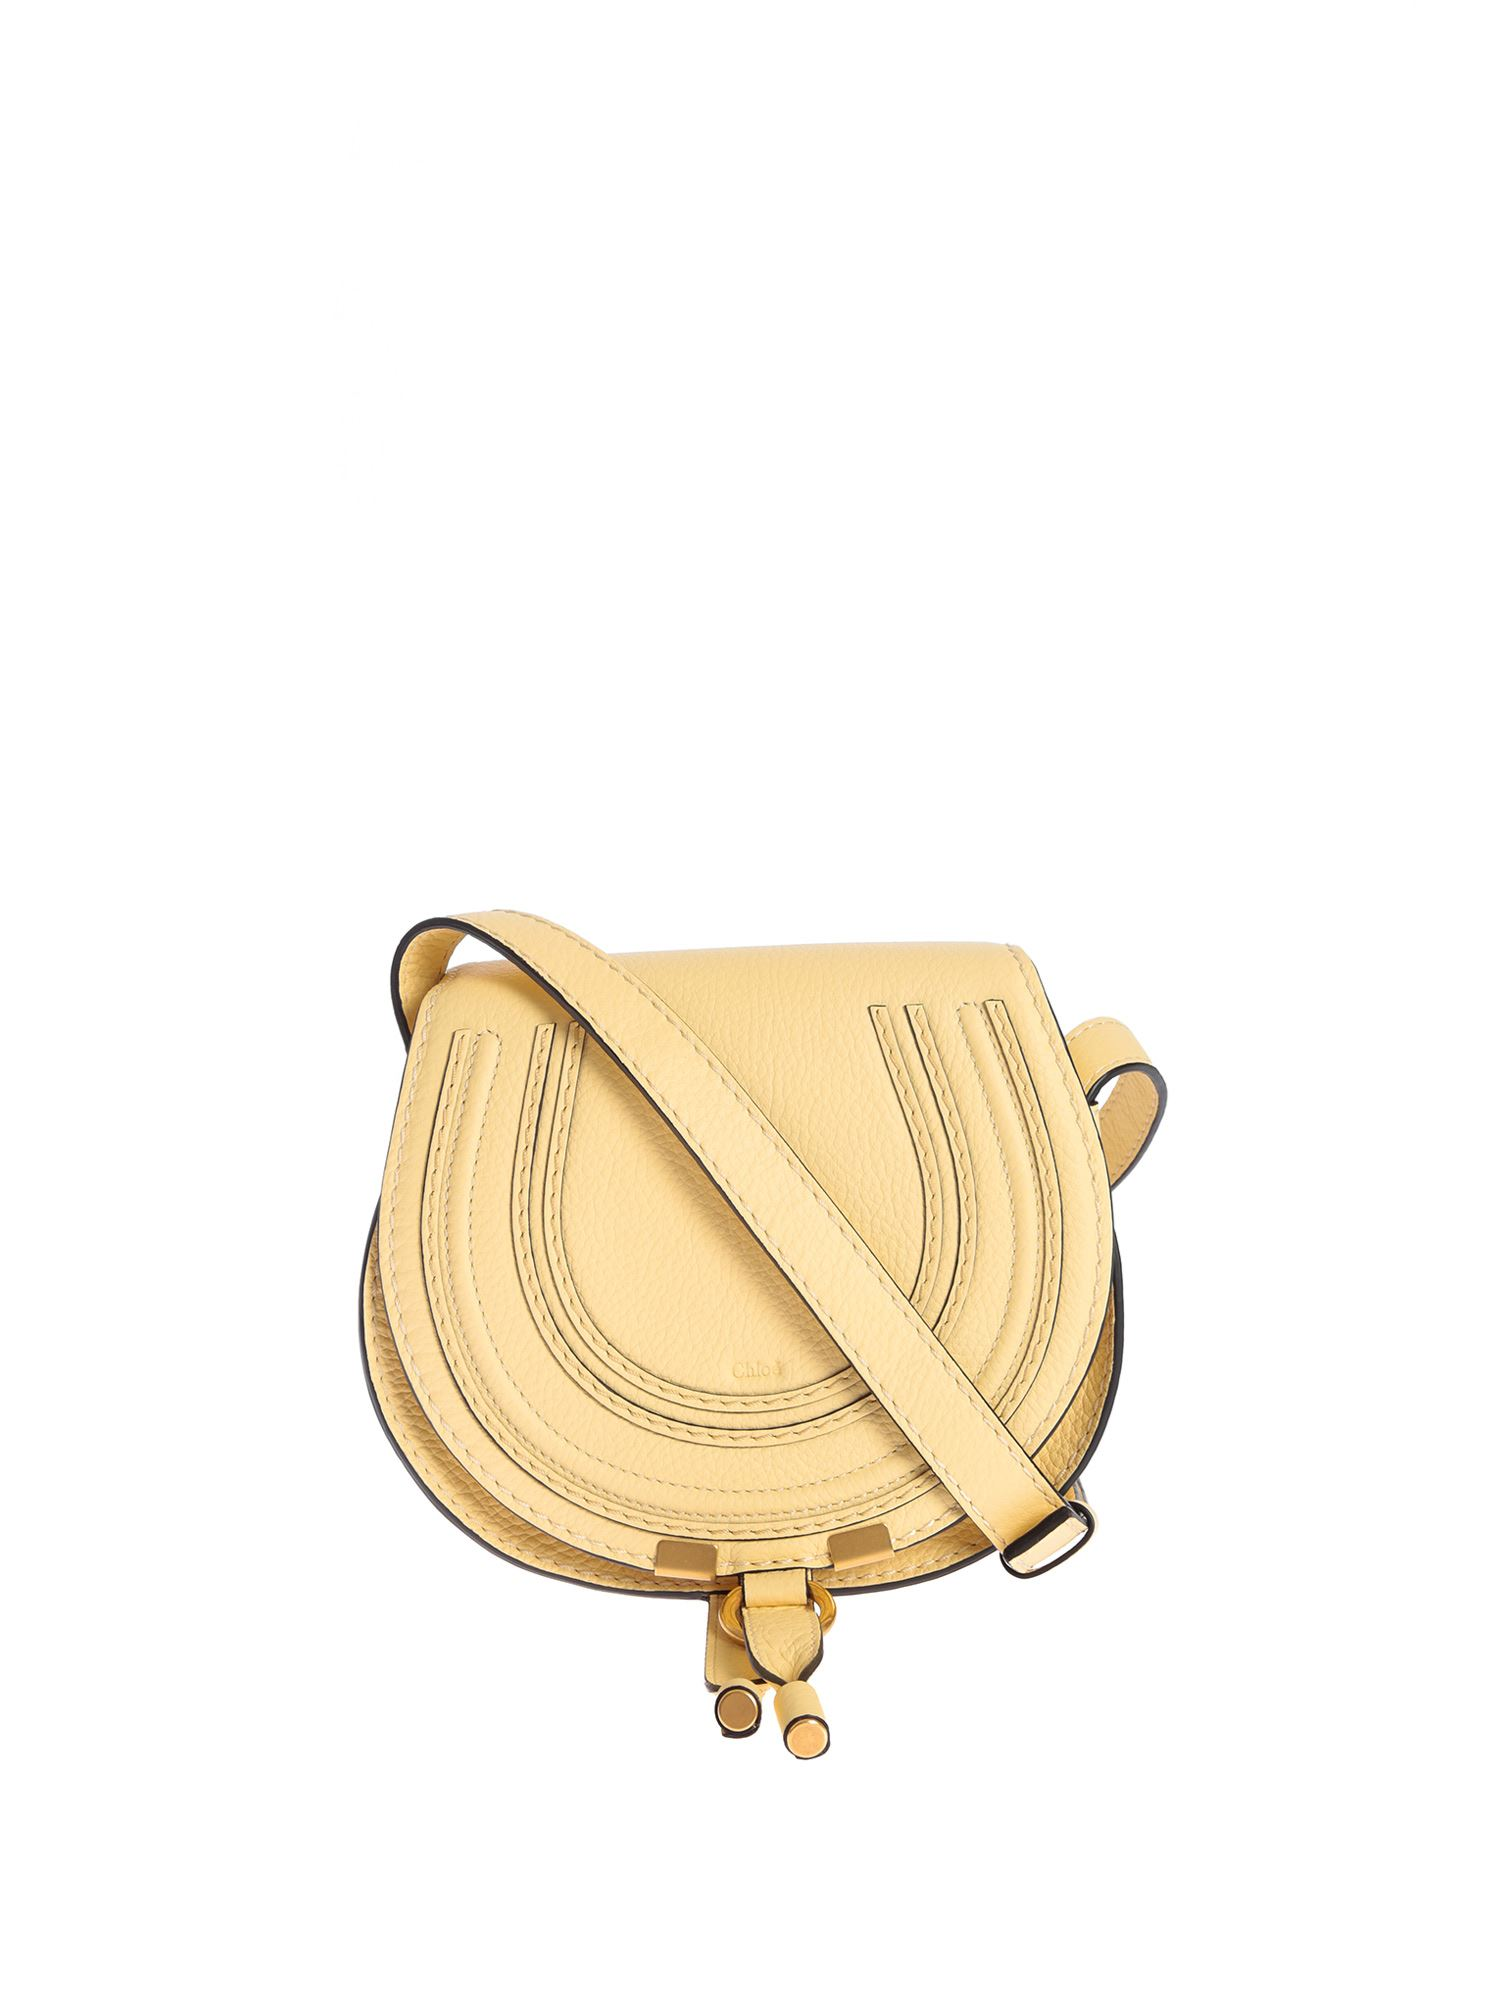 Chloé MARCIE MINI BAG IN SOFTY YELLOW